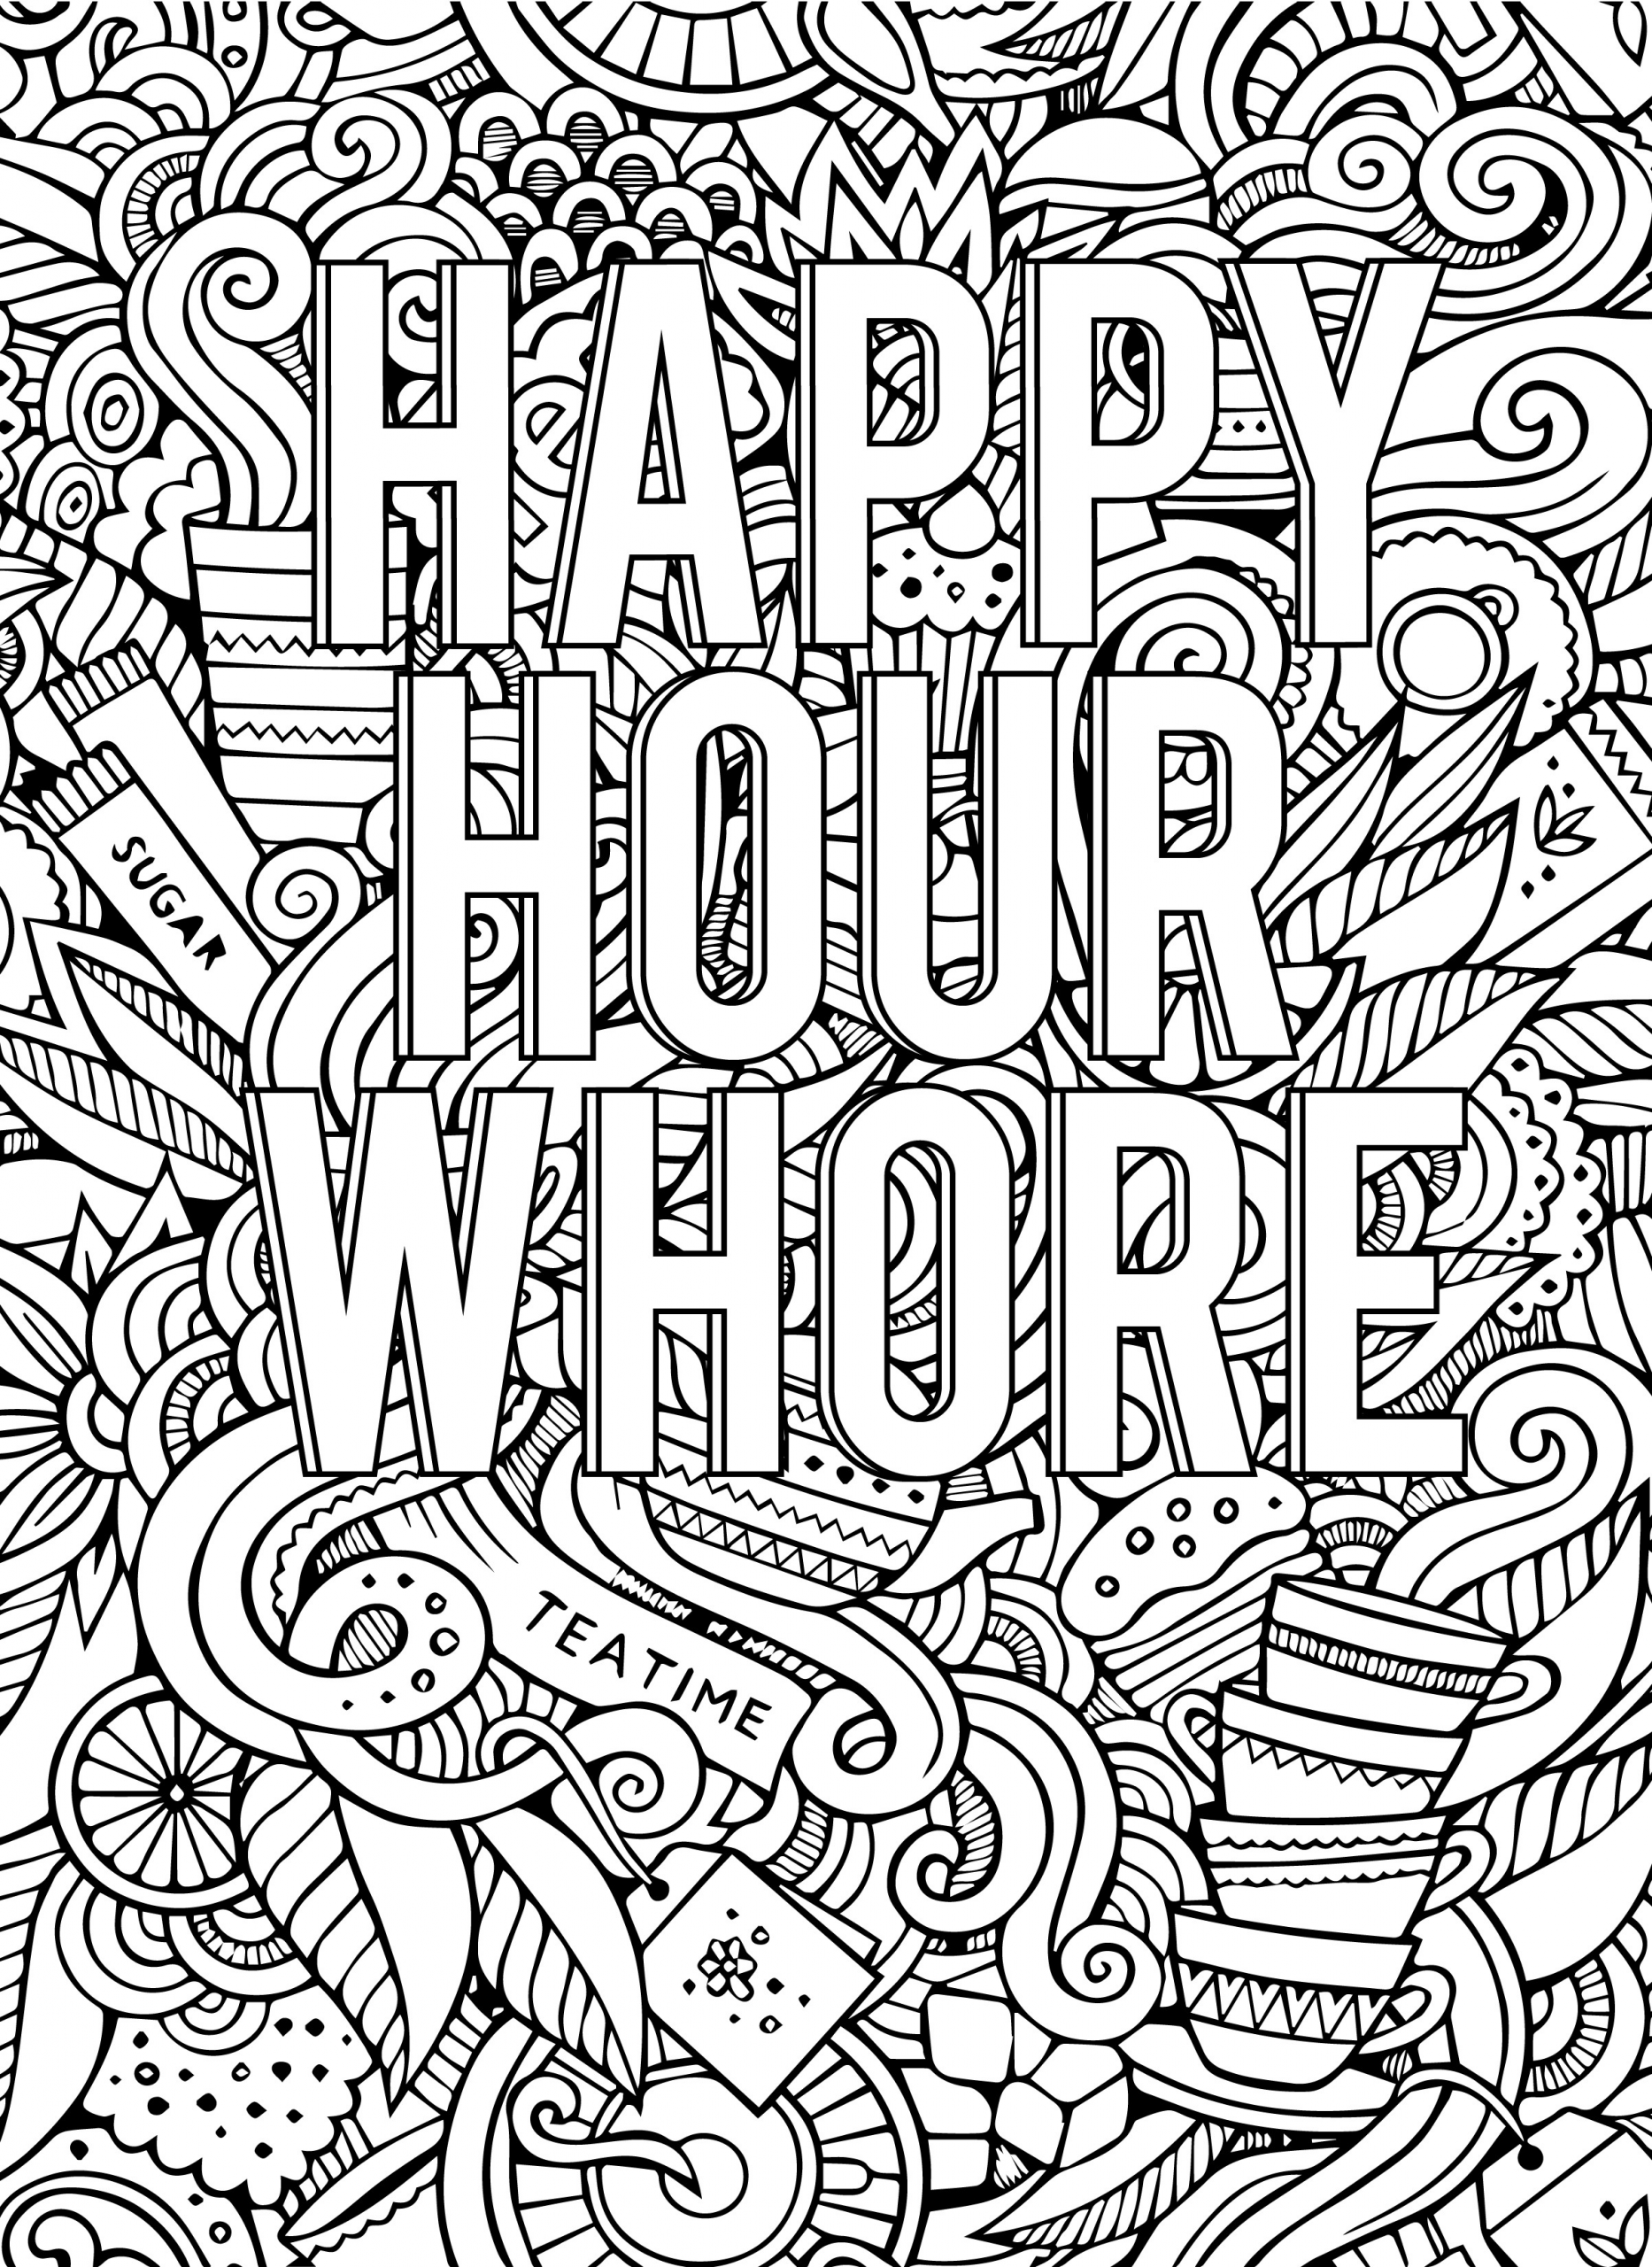 Adult Coloring Pages Swear Words  Cannabis Fantasy Cool Coloring Book Pages